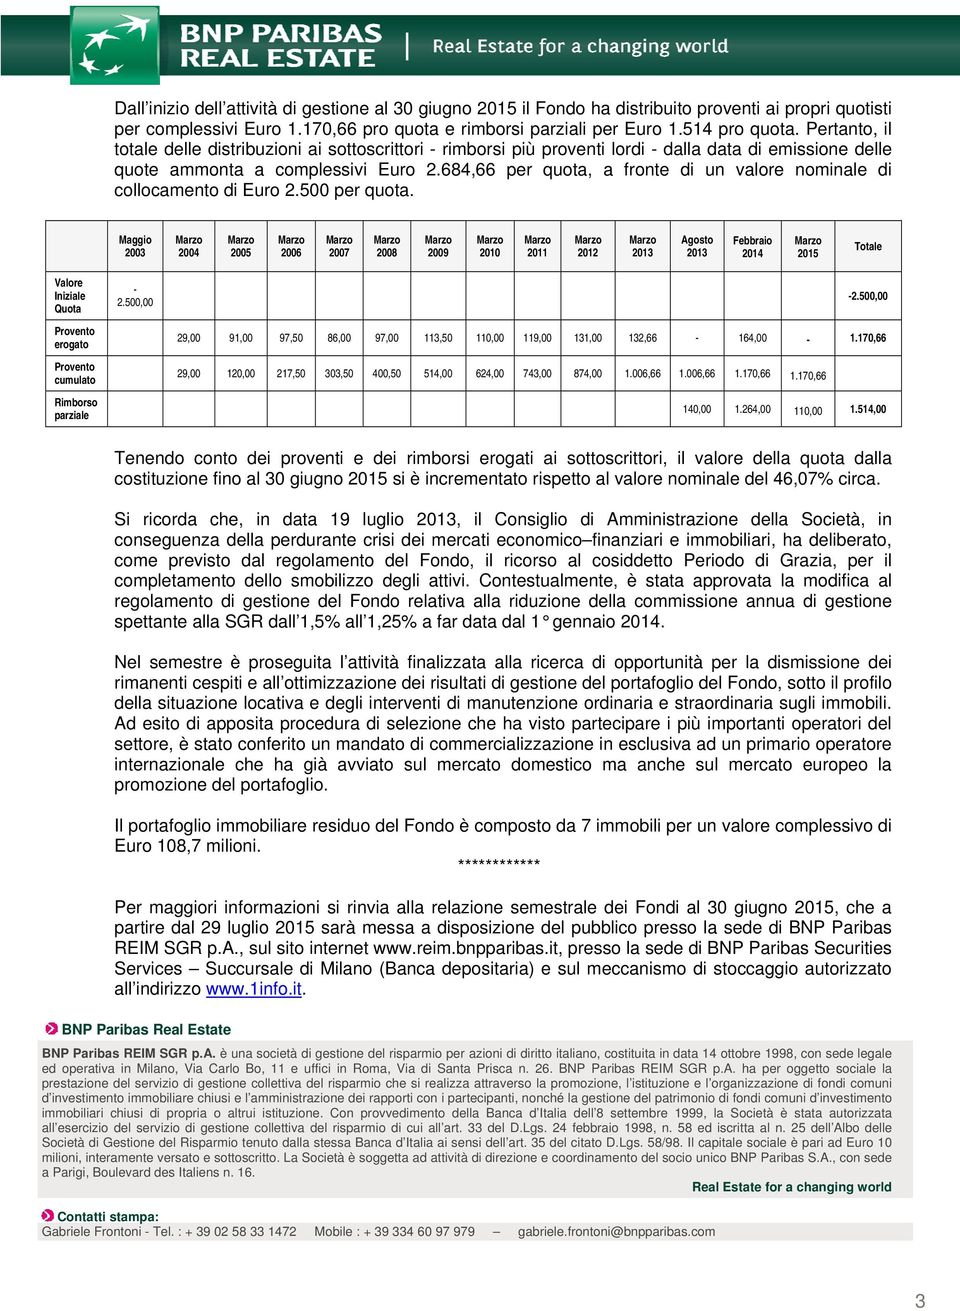 684,66 per quota, a fronte di un valore nominale di collocamento di Euro 2.500 per quota.